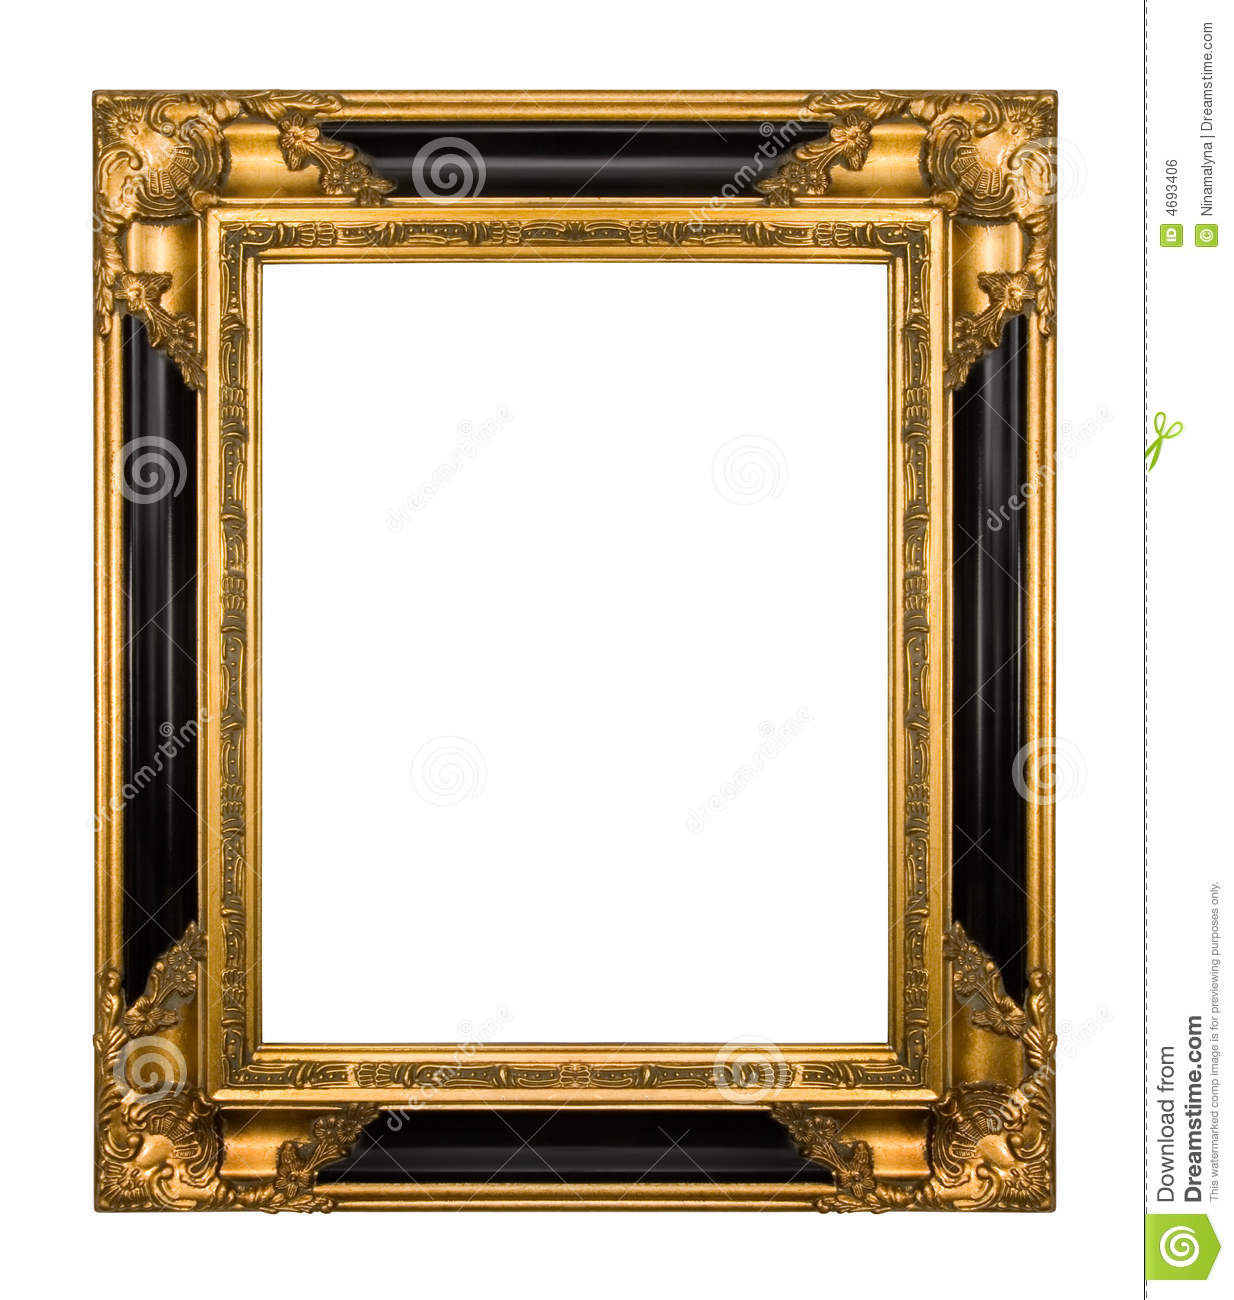 Vintage gold and piano black ornate frame stock photo image of vintage gold and piano black ornate frame jeuxipadfo Image collections